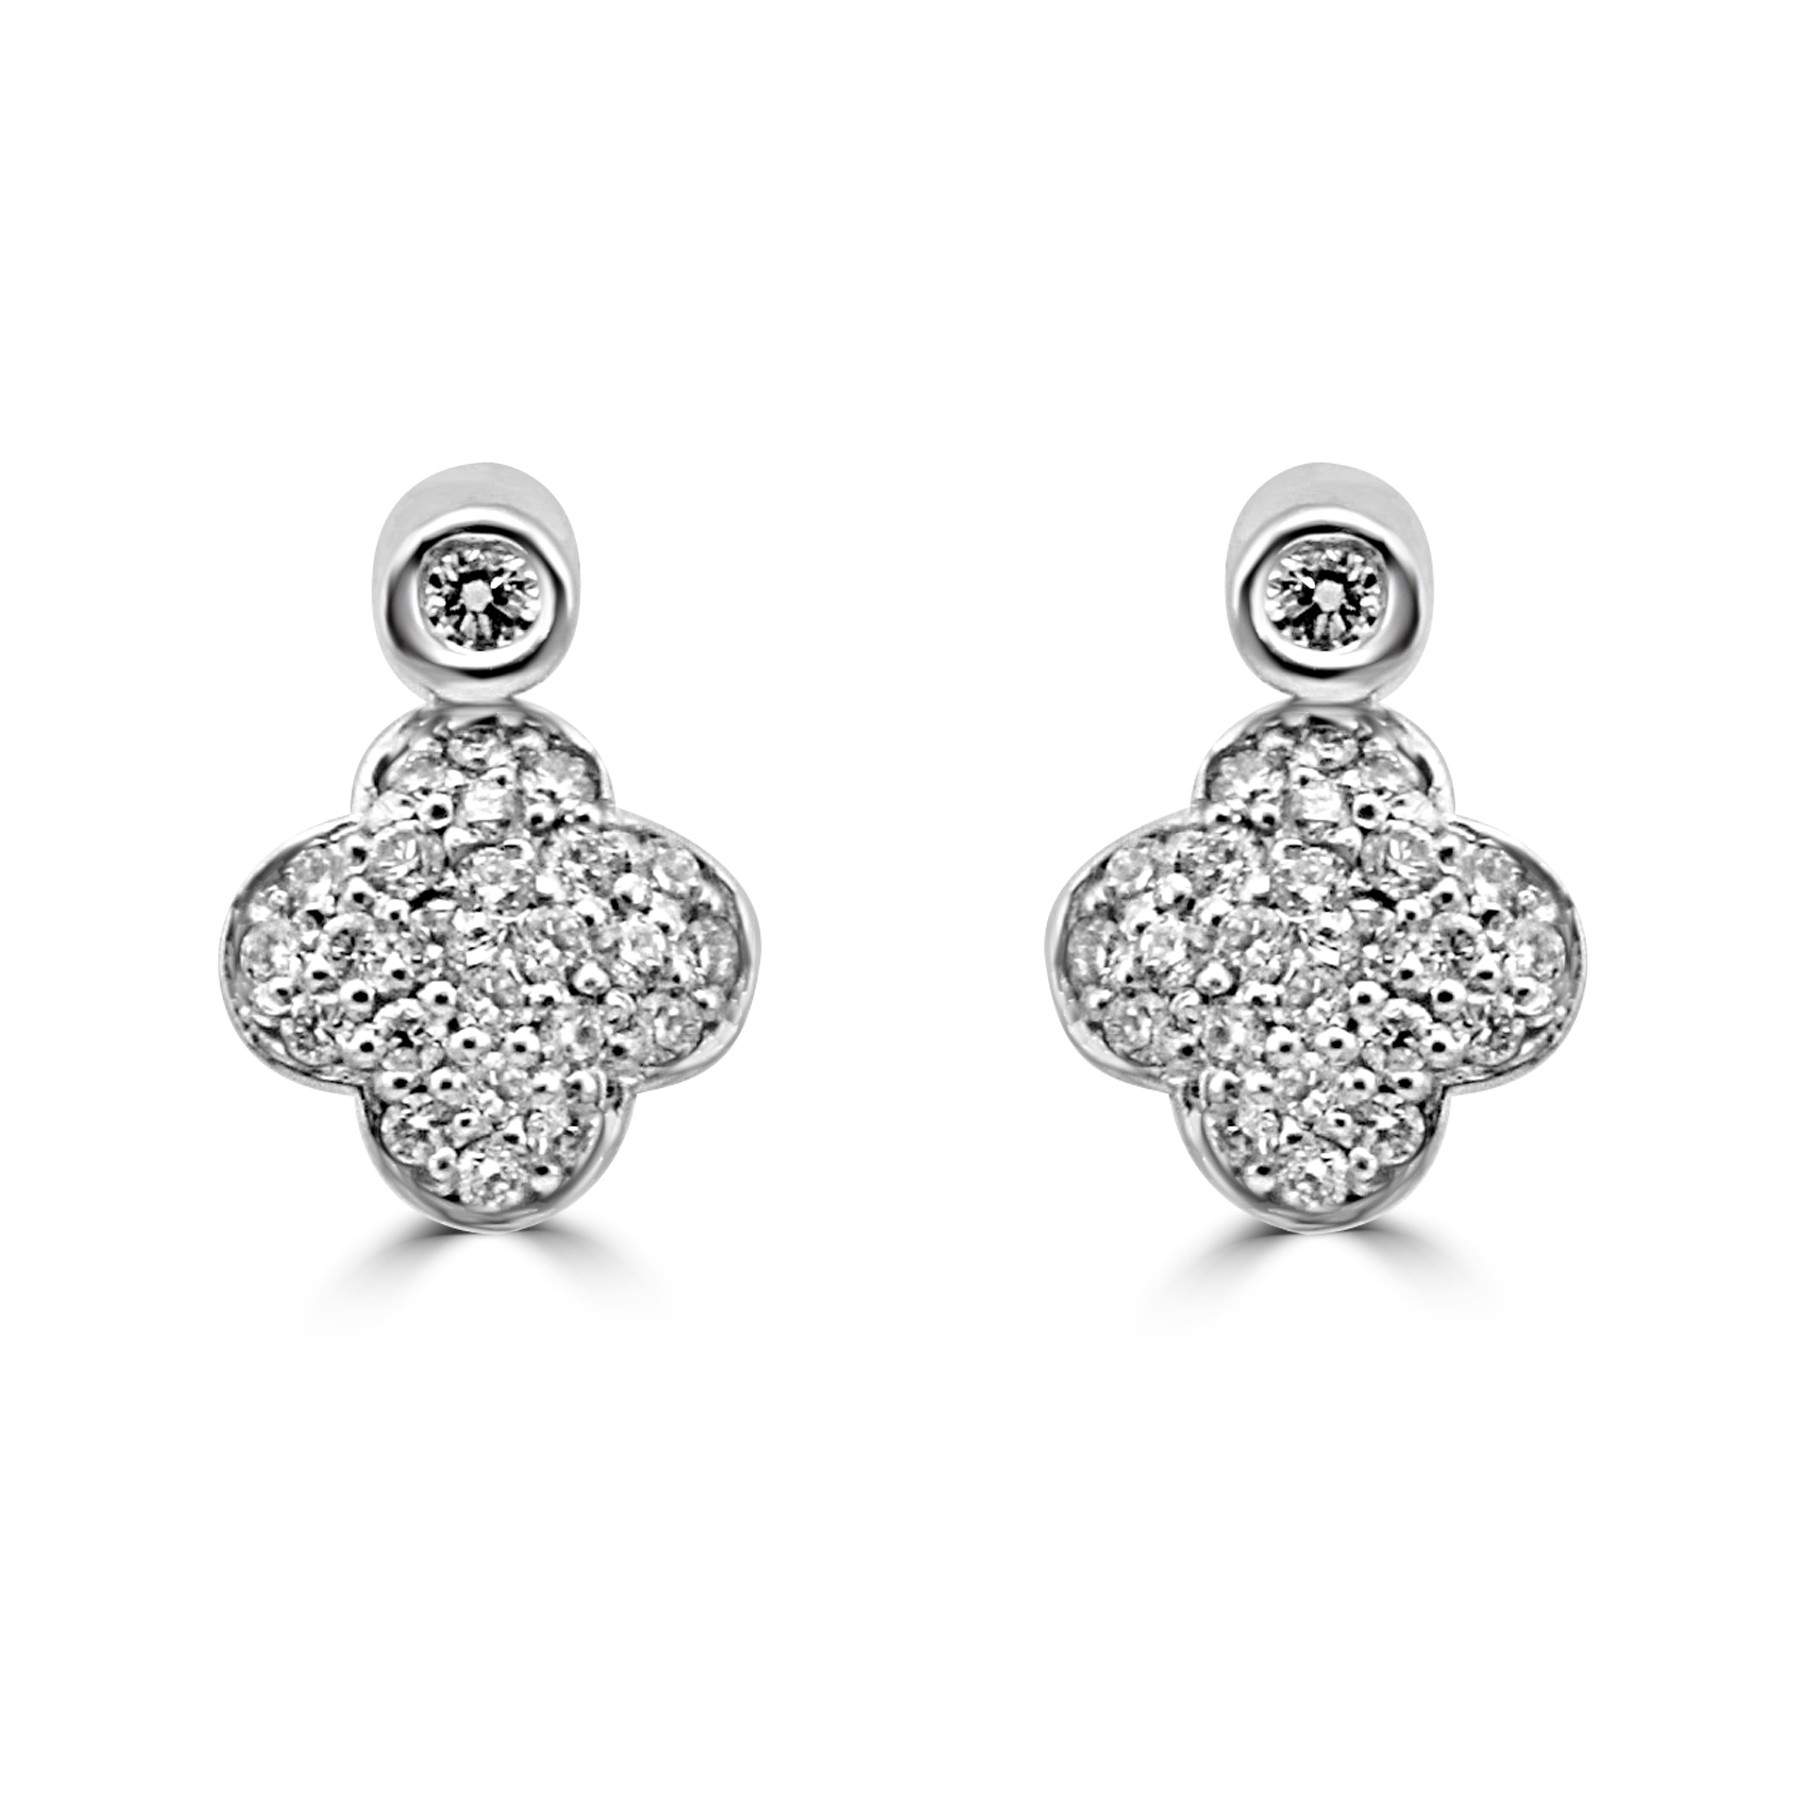 14k W/G Four Leaf Clover Diamond Earrings